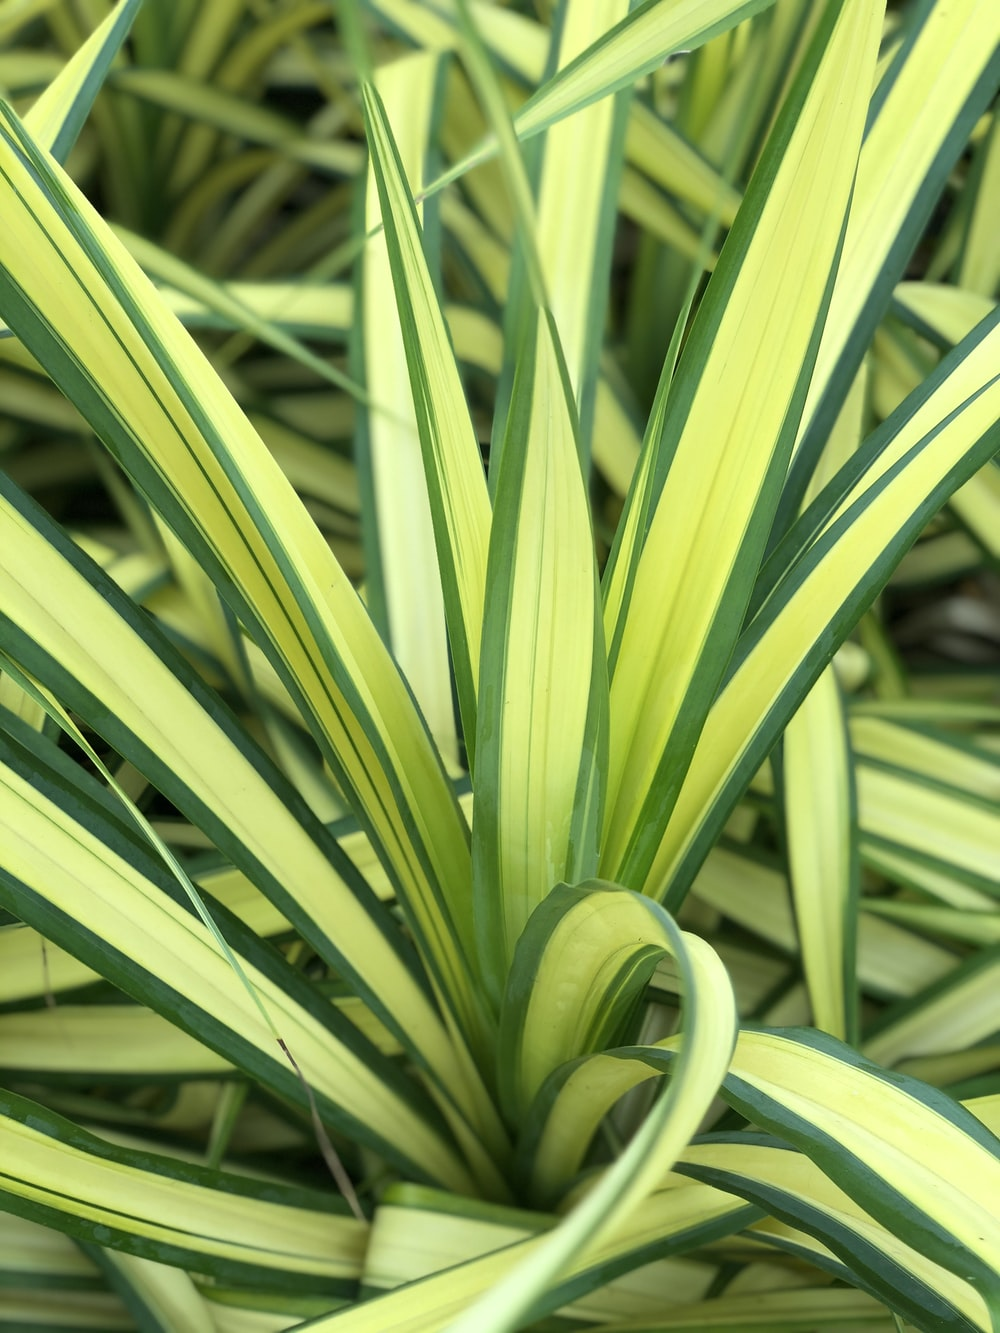 yellow and green leaf plant